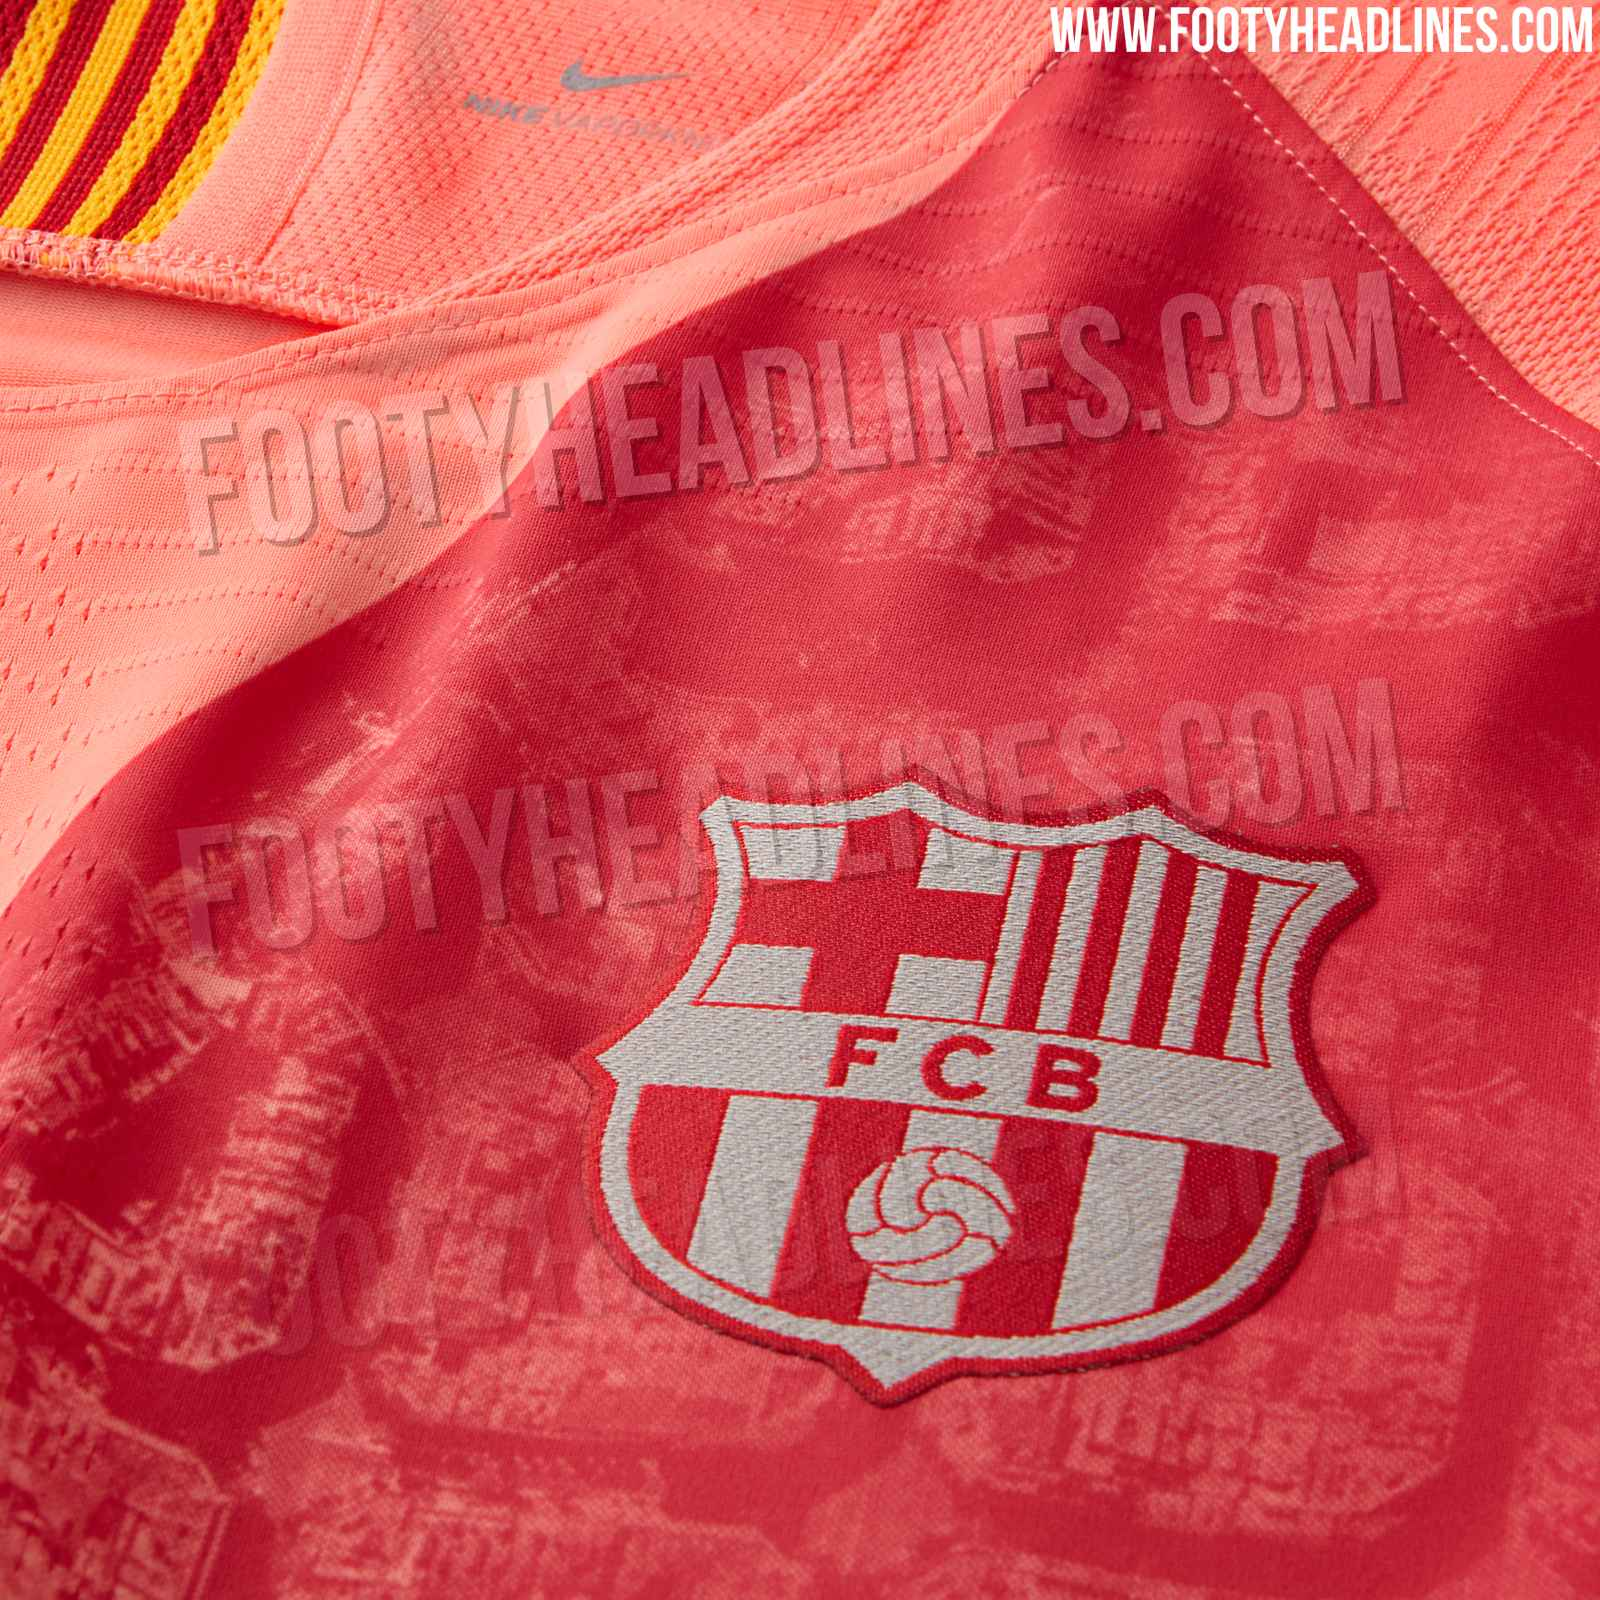 in stock f8a32 c03b1 The Rakuten logo on the Barcelona 2018-2019 third shirt is white, which is  not ideal for legibility but helps keep the design streamlined.